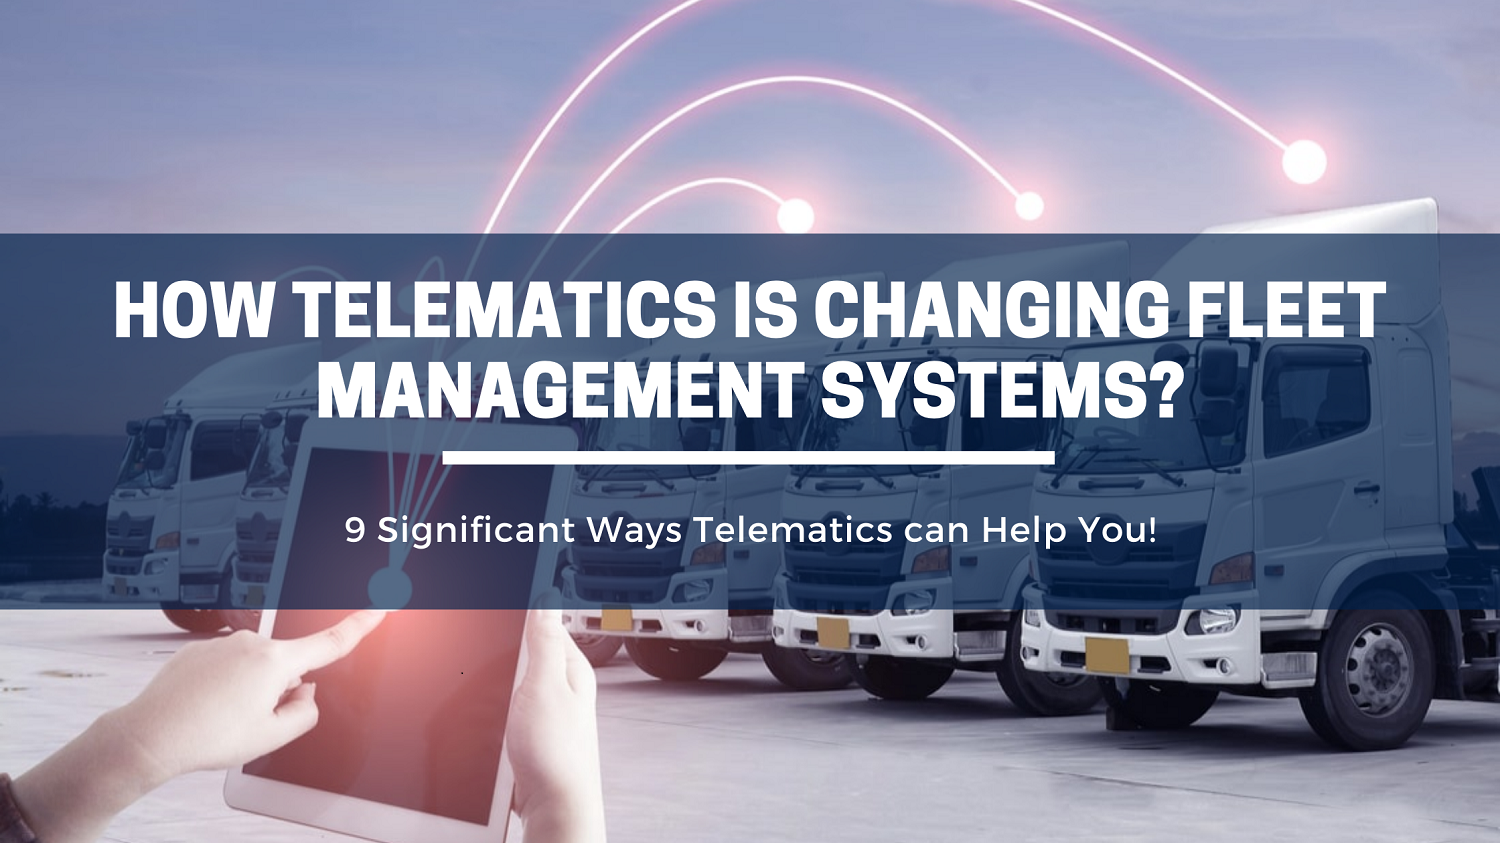 How Telematics is Changing Fleet Management Systems